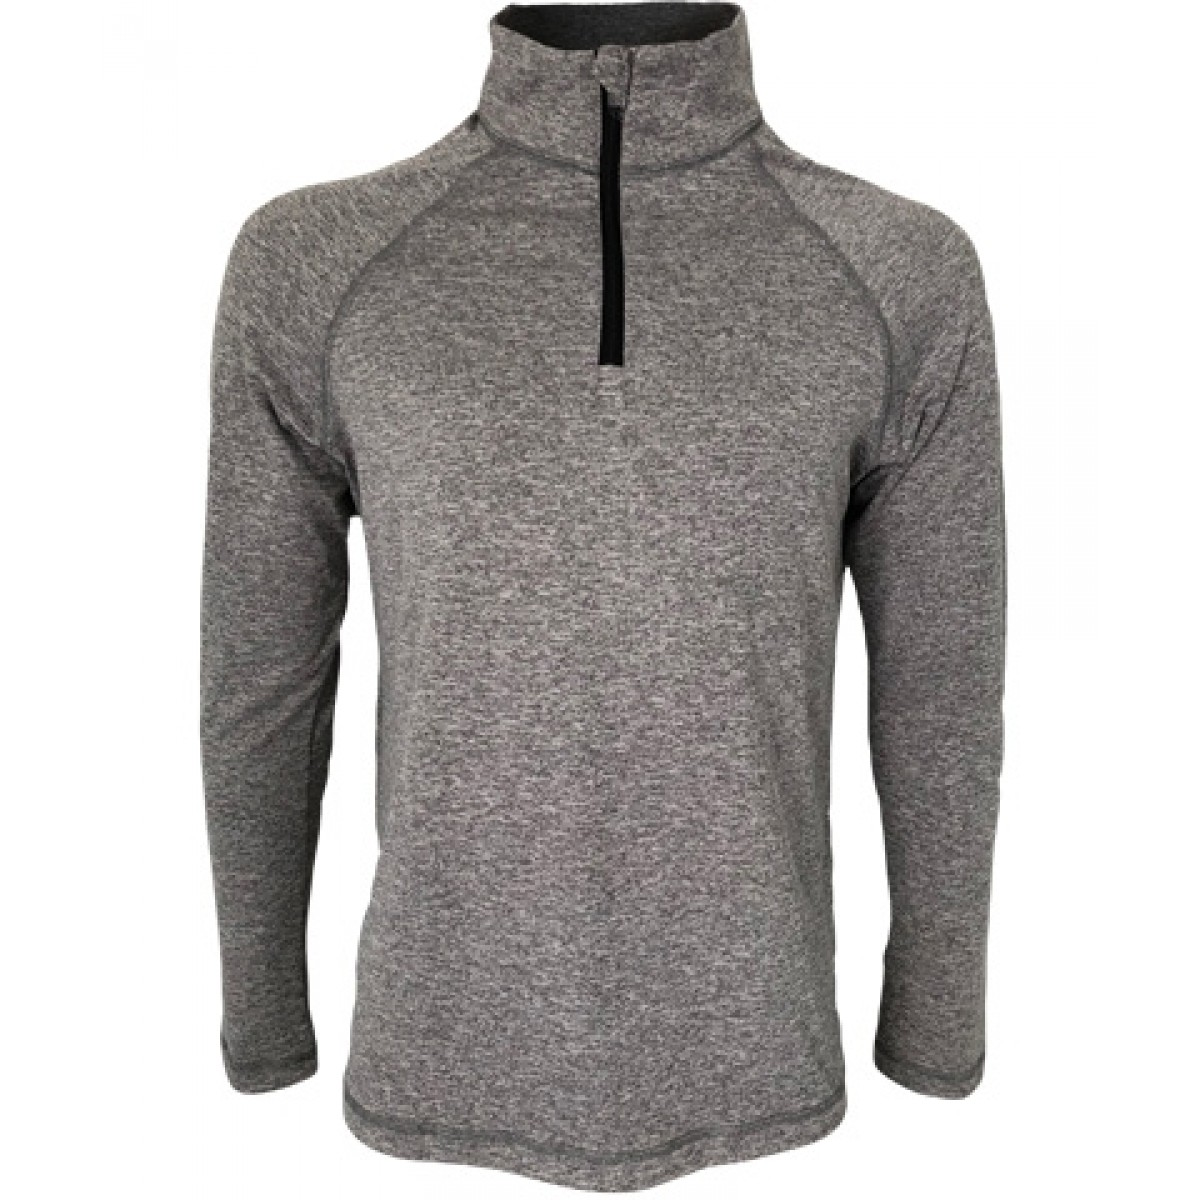 Men's Quarter-Zip Lightweight Pullover-Gray -S